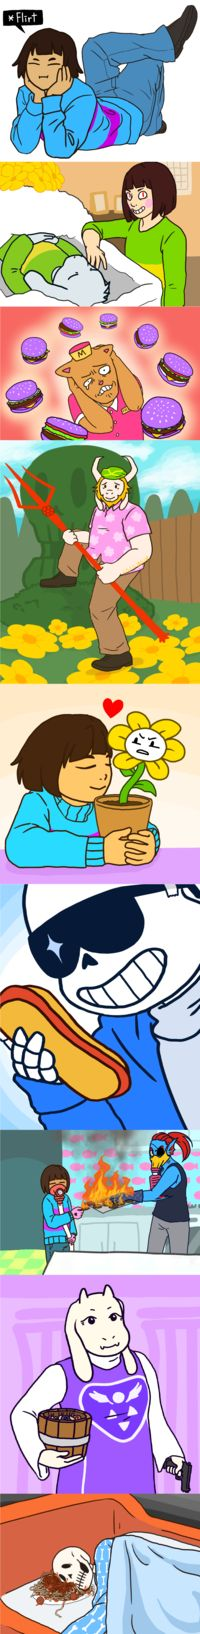 See more 'Undertale' images on Know Your Meme! Undertale Cosplay, Undertale Fanart, Undertale Comic, Undertale Memes, Sans Puns, Photo Recreation, Rawr Xd, Toby Fox, Know Your Meme